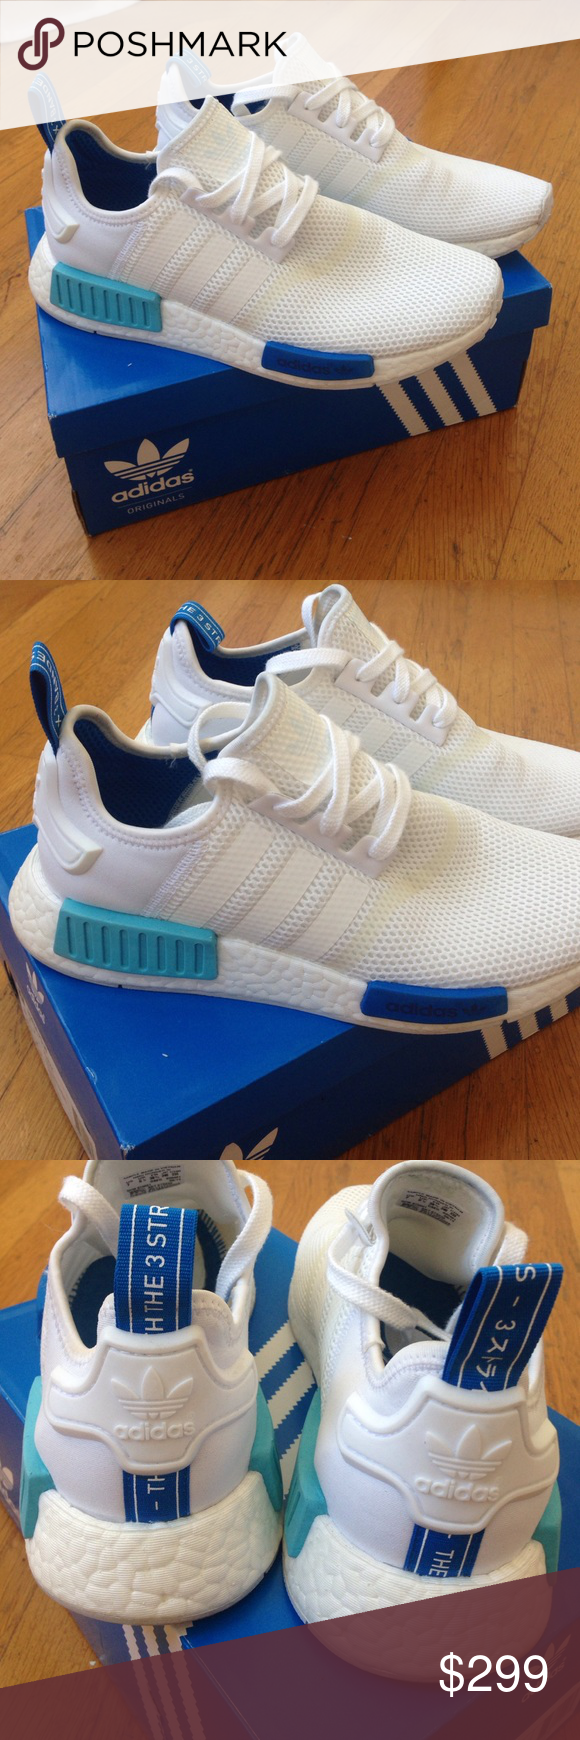 Adidas Originals NMD boost limited size 8 white Limited edition of Adidas  NMD all white with blue accents size 8 worn once Adidas Shoes Sneakers fb69e93f54f7